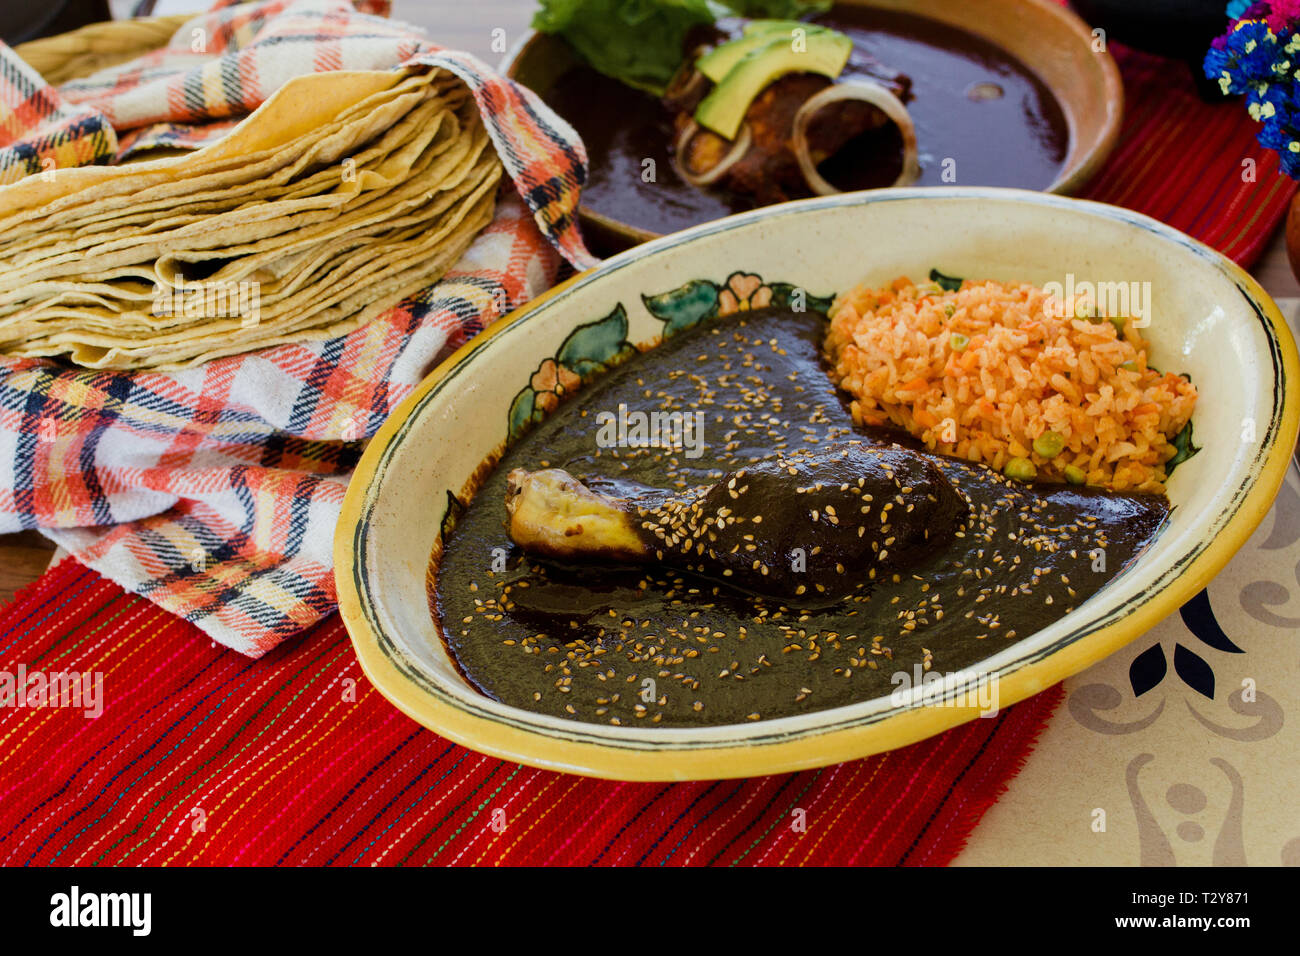 Mole Poblano Traditional Mexican Food with Chicken in Mexico Stock Photo